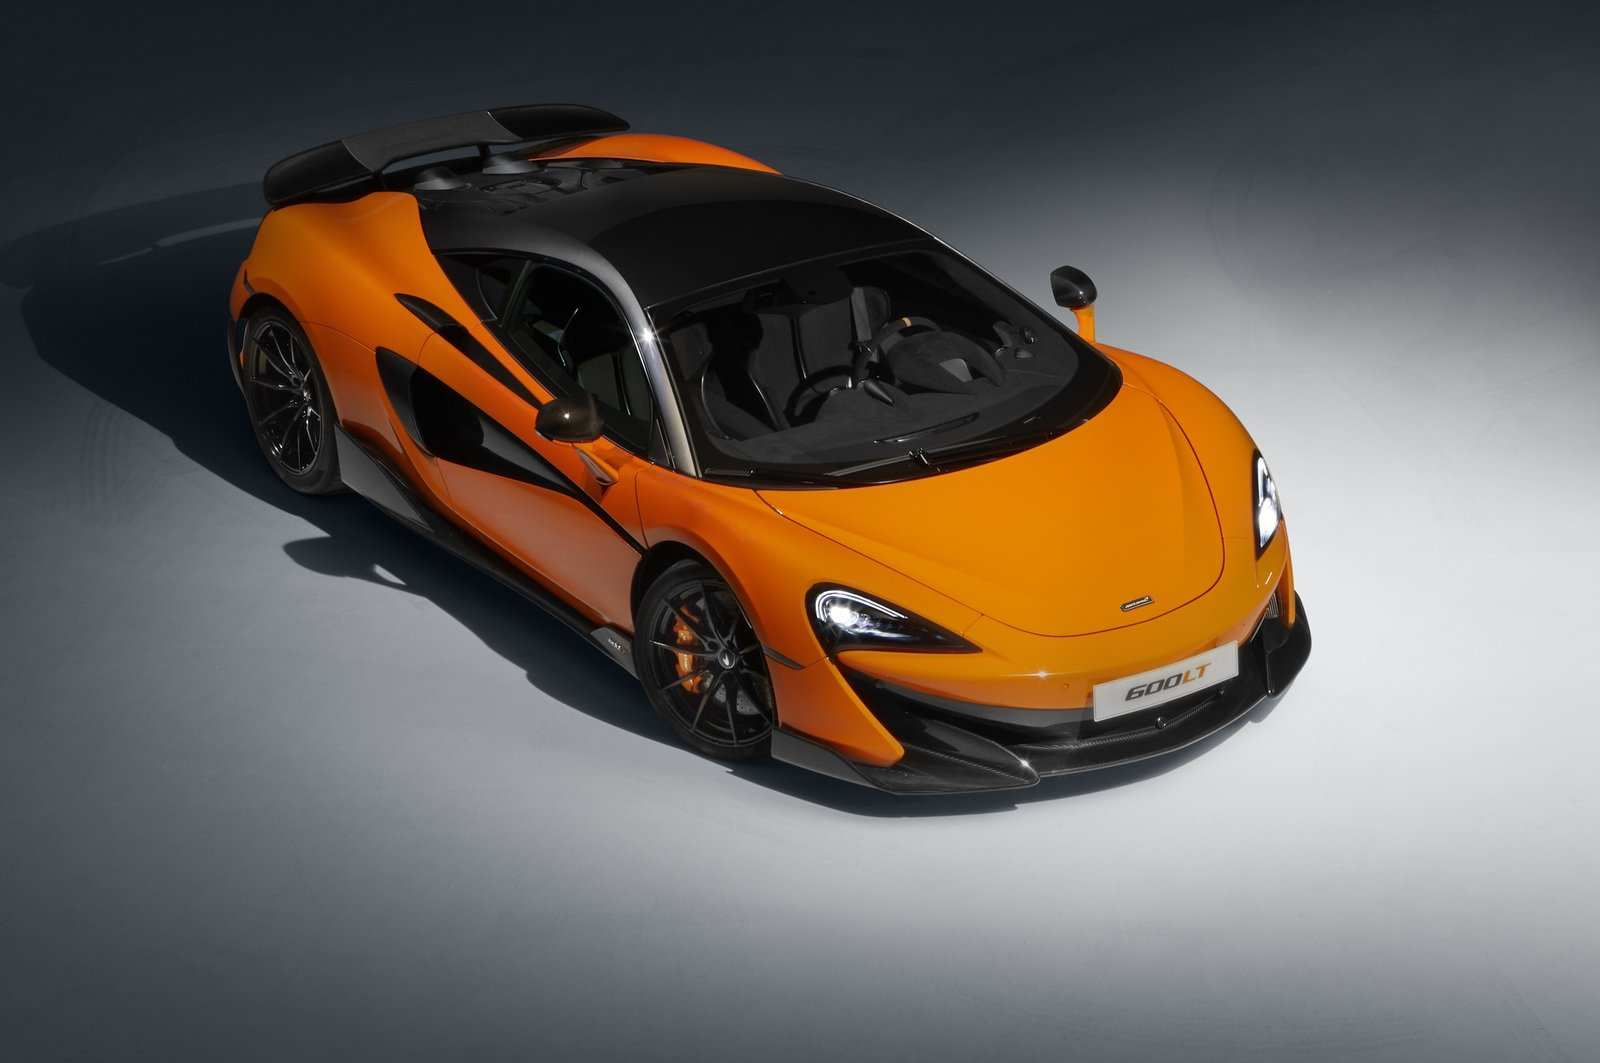 34 New 2019 Mclaren Top Speed Wallpaper